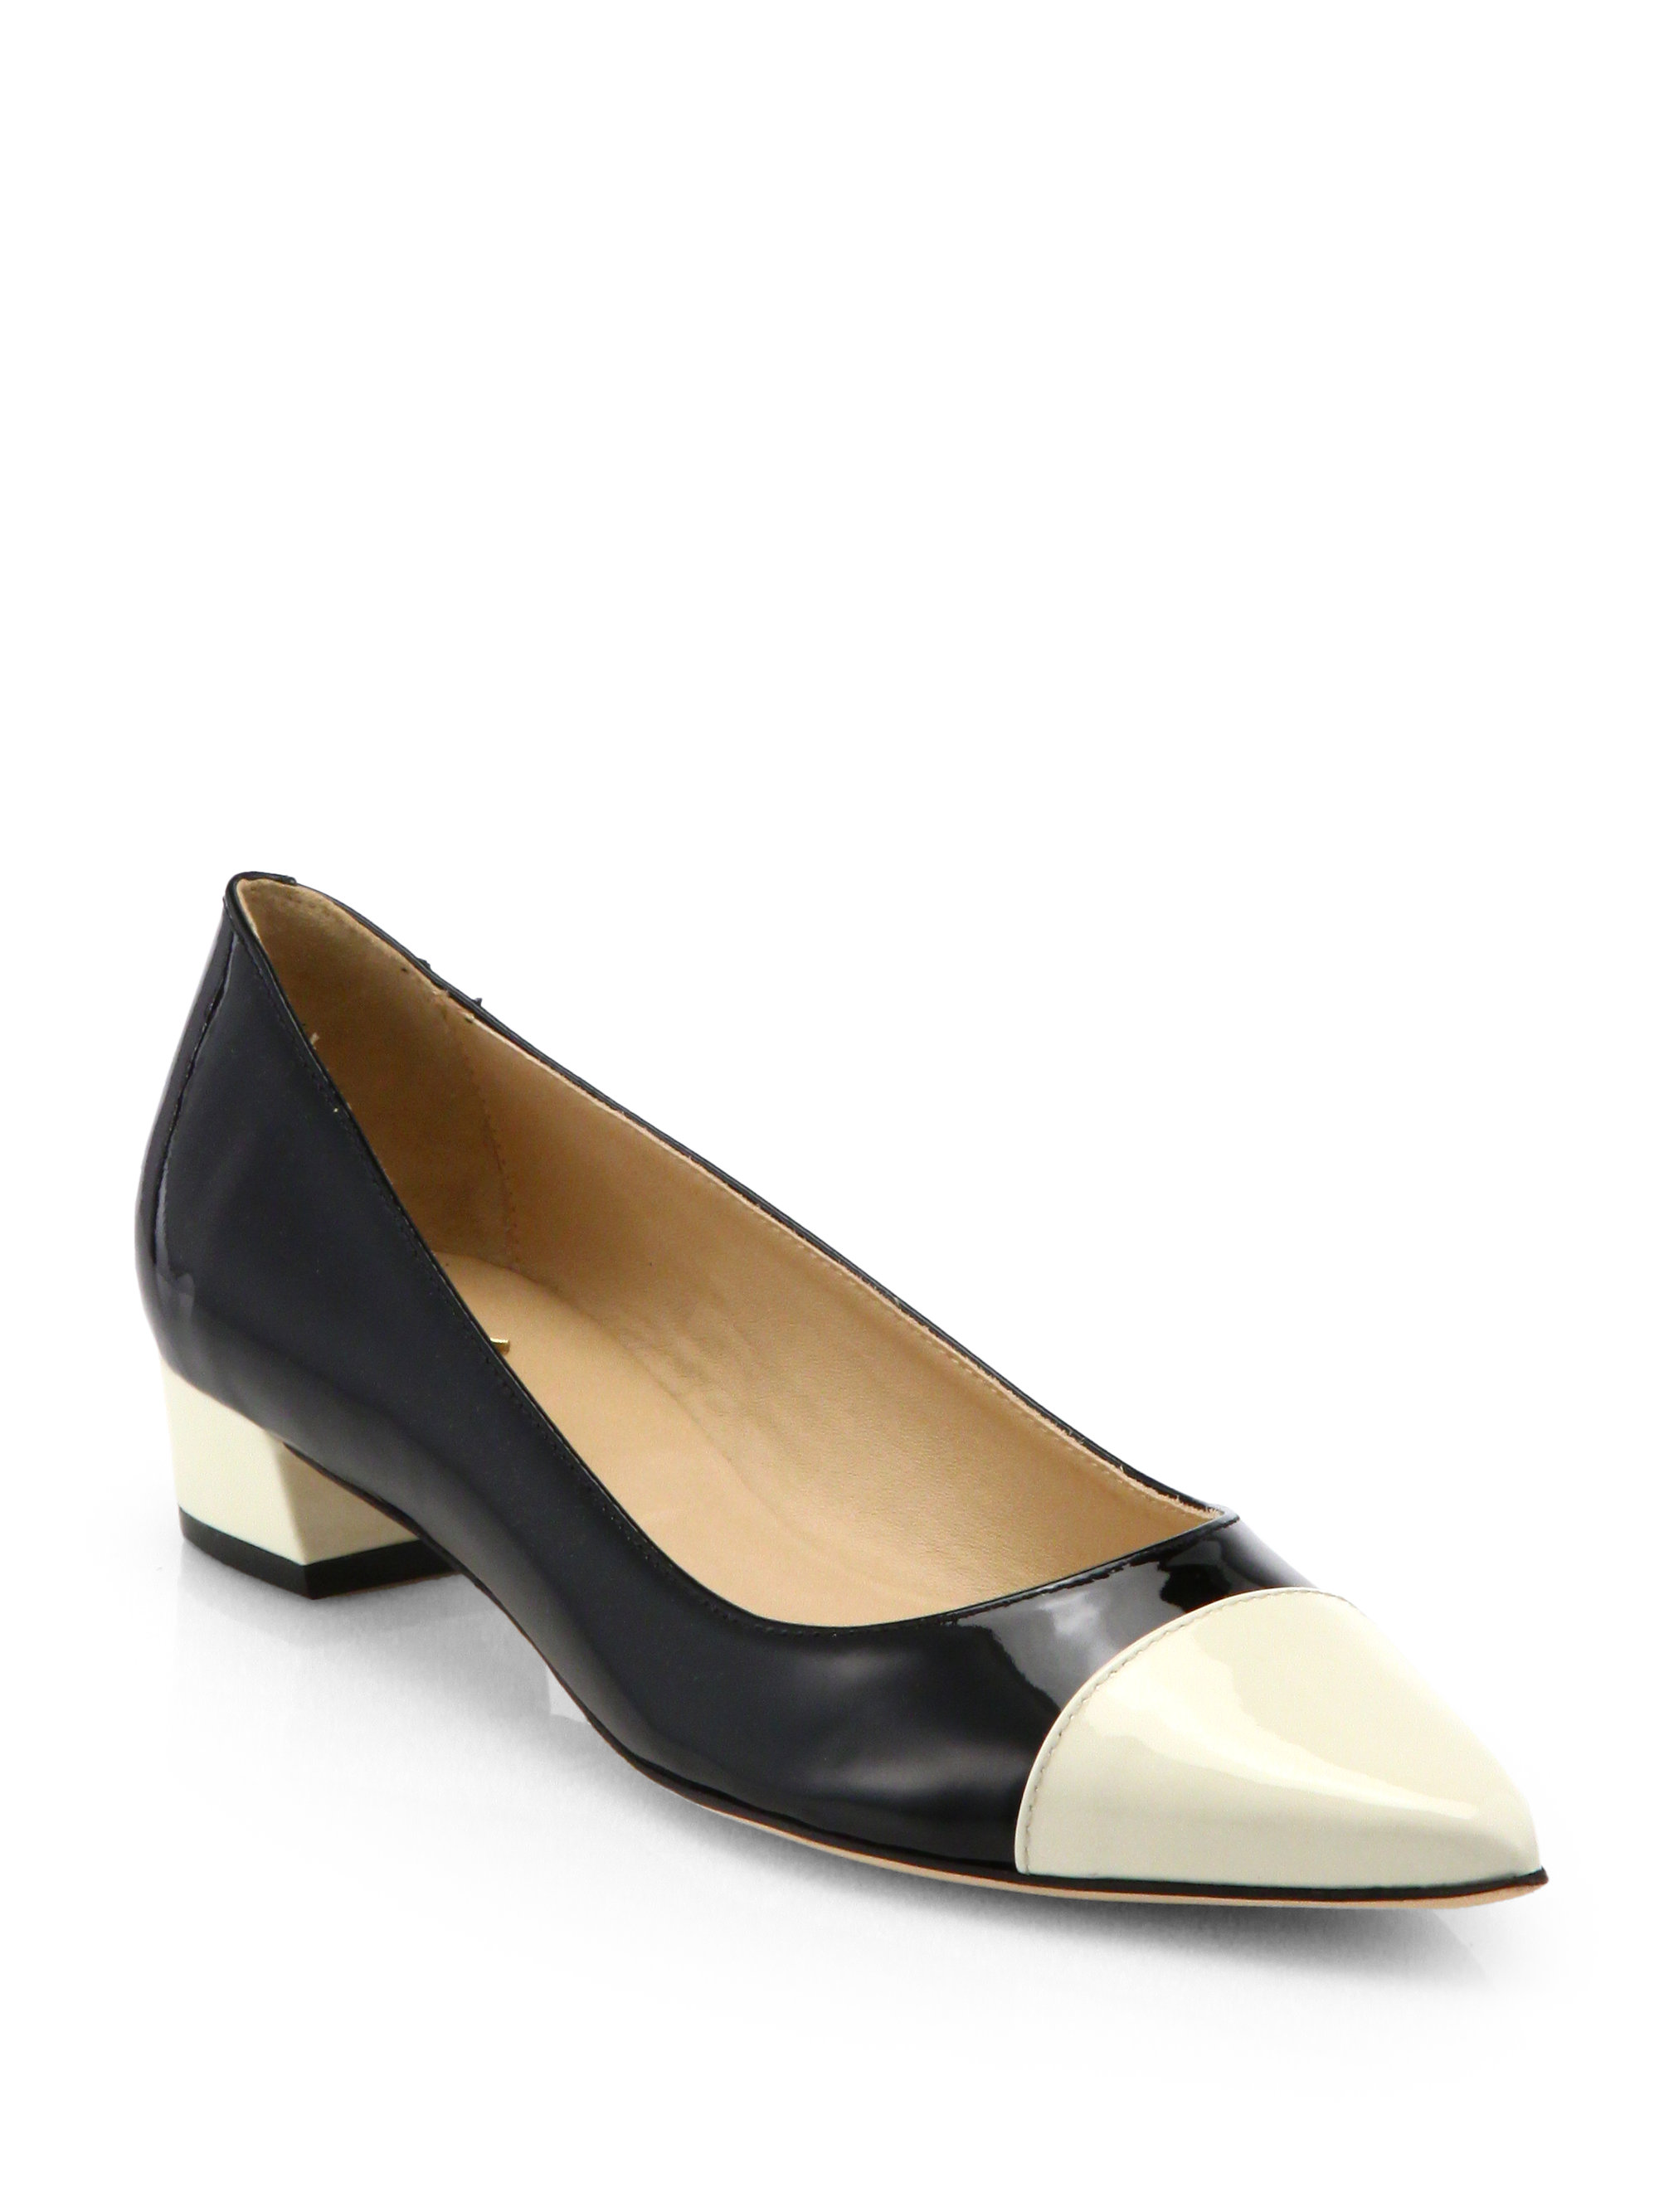 kate spade adie bicolor patent leather pumps in black lyst